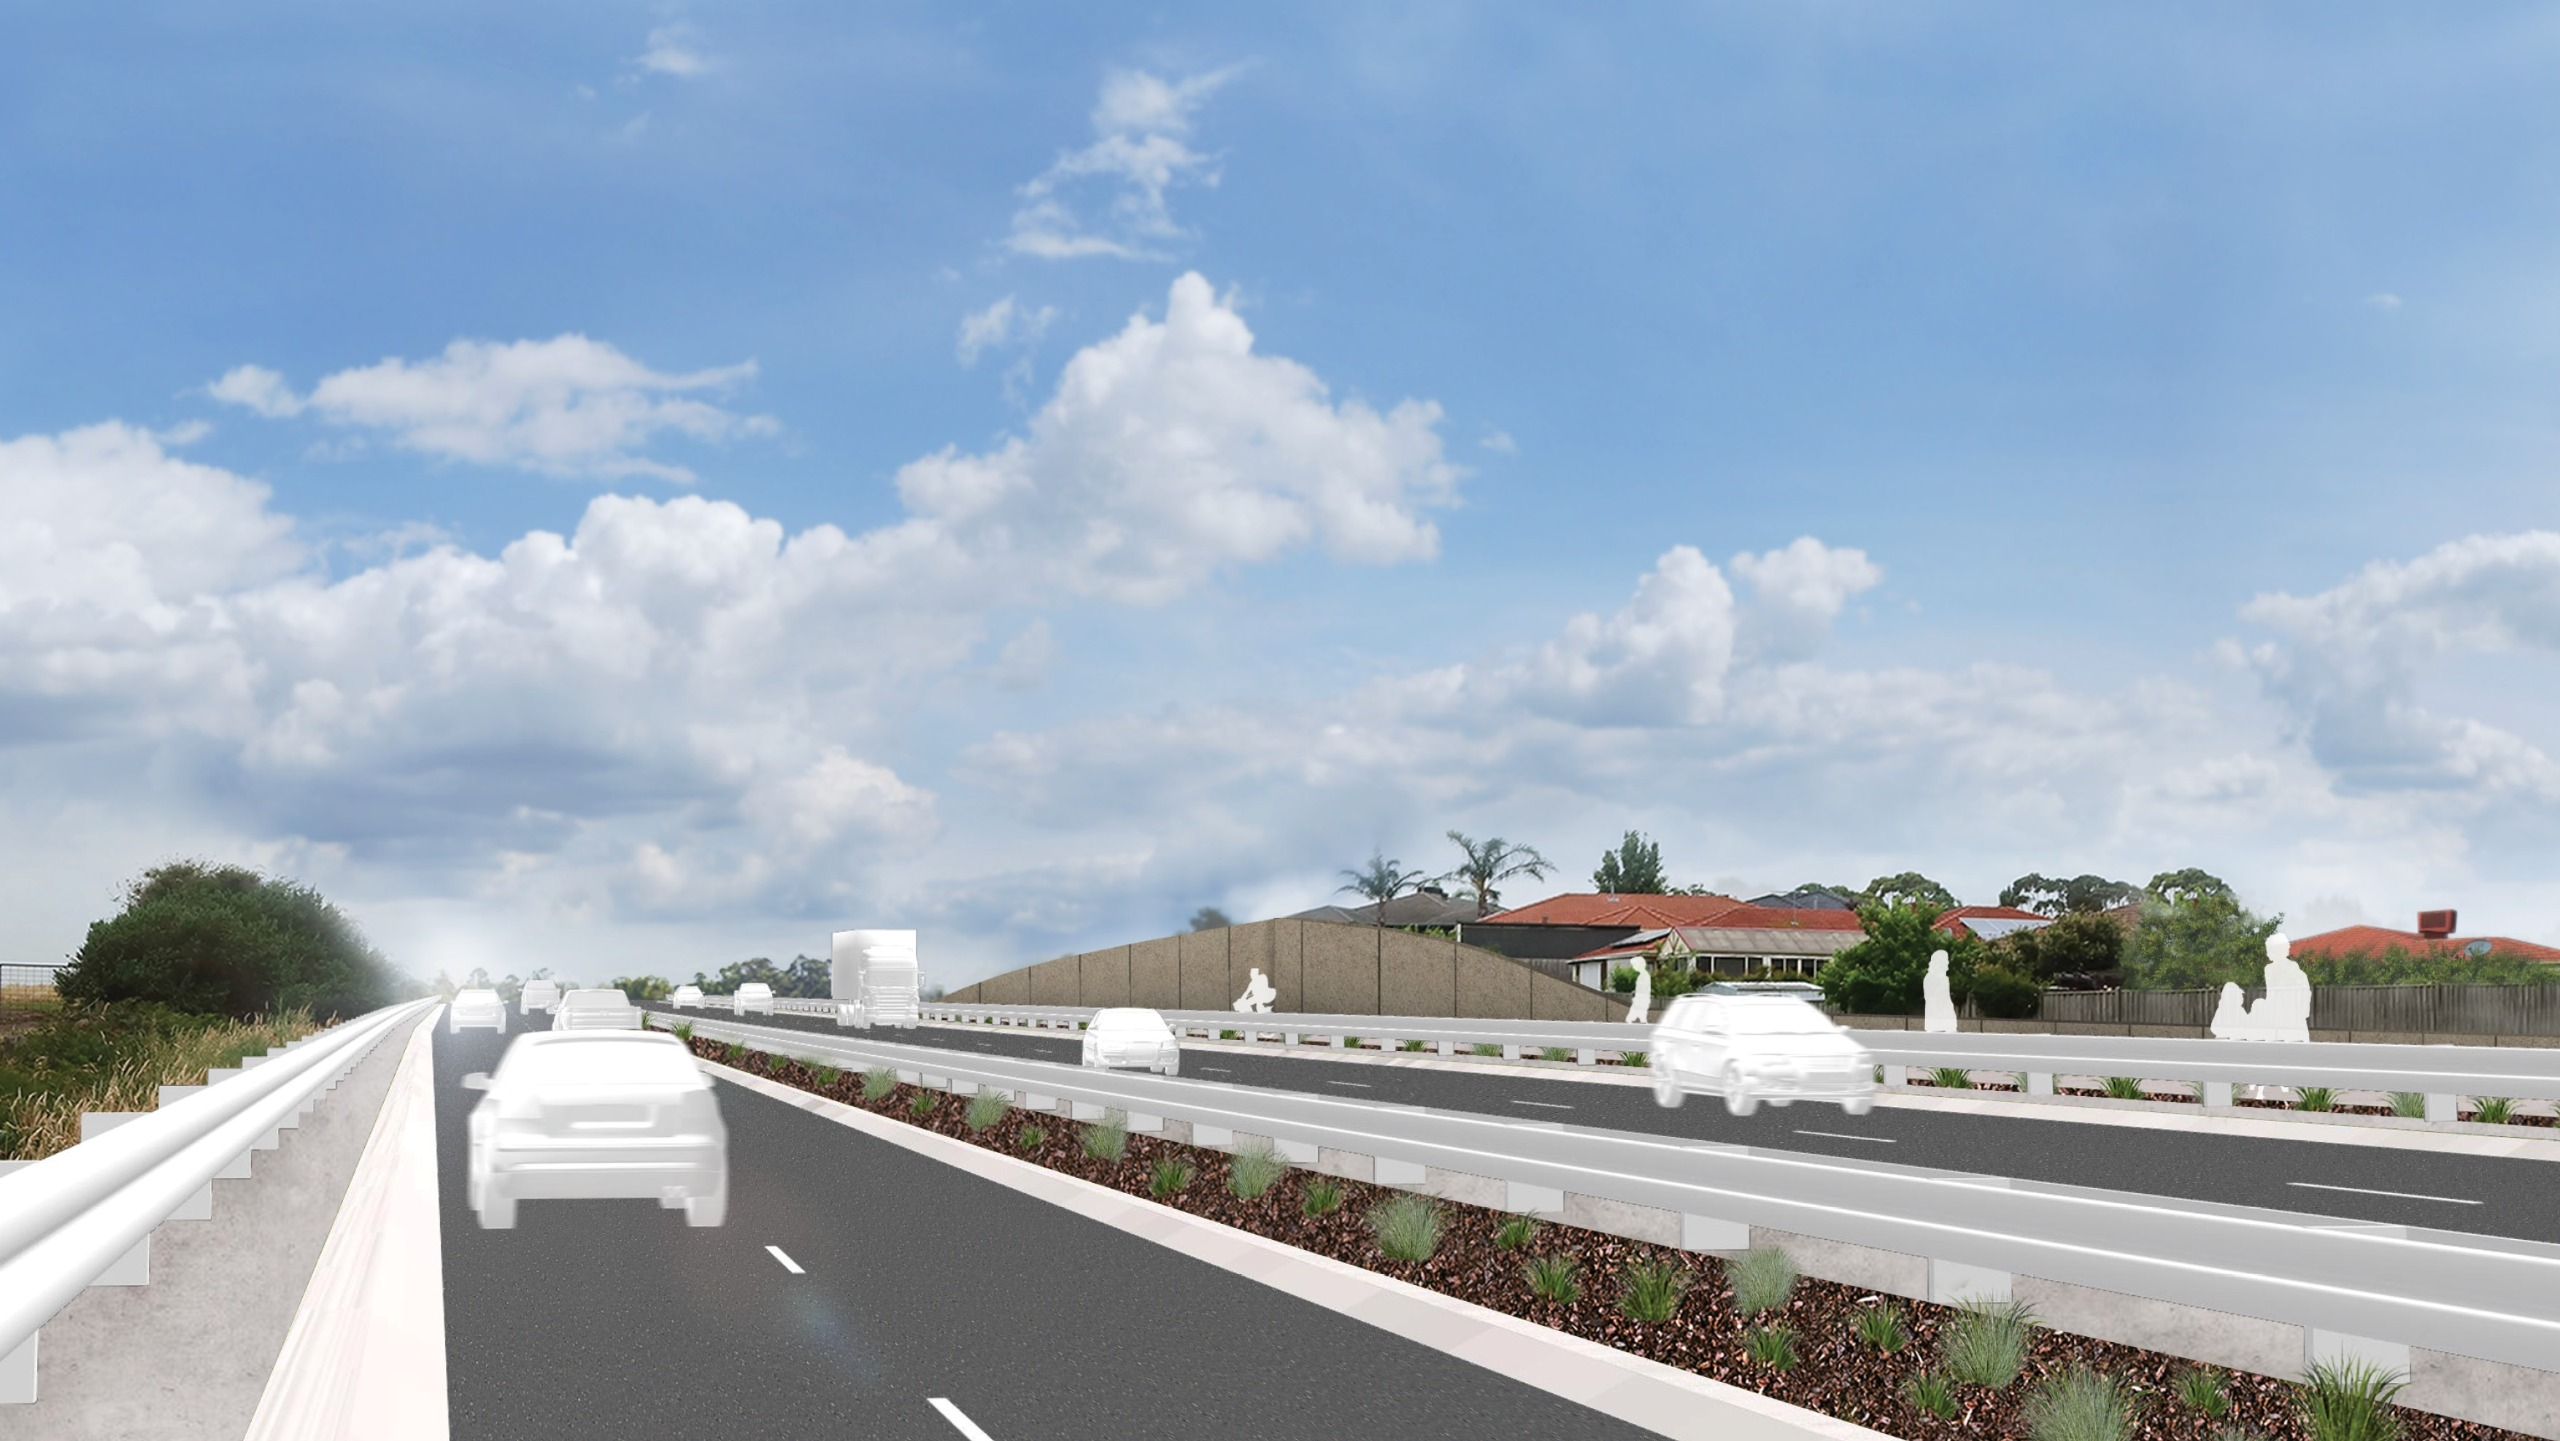 Artist's impression of cars driving on Hall Road 1 year after project completion